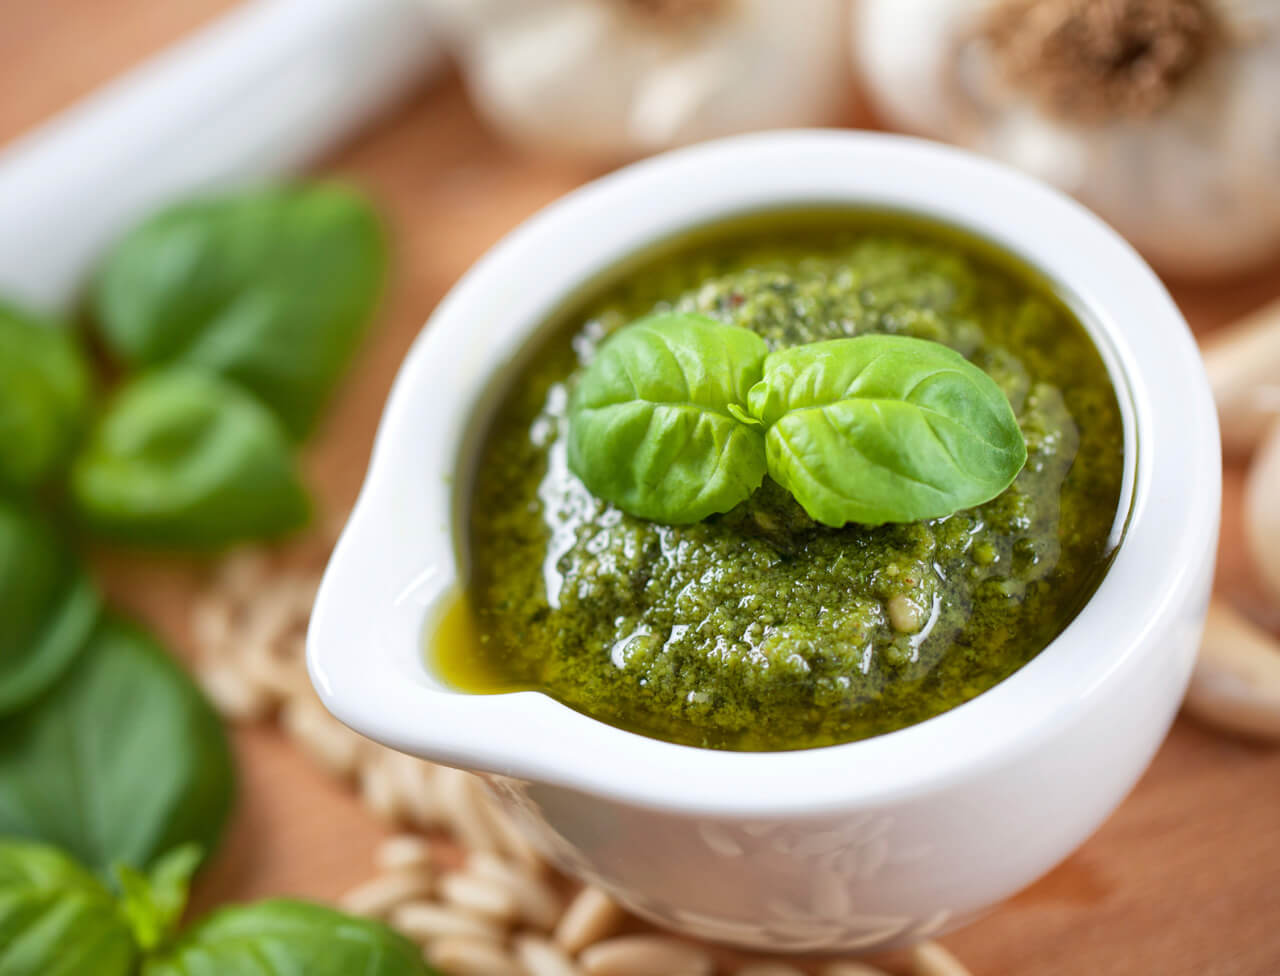 God bless the Ligurian pesto sauce